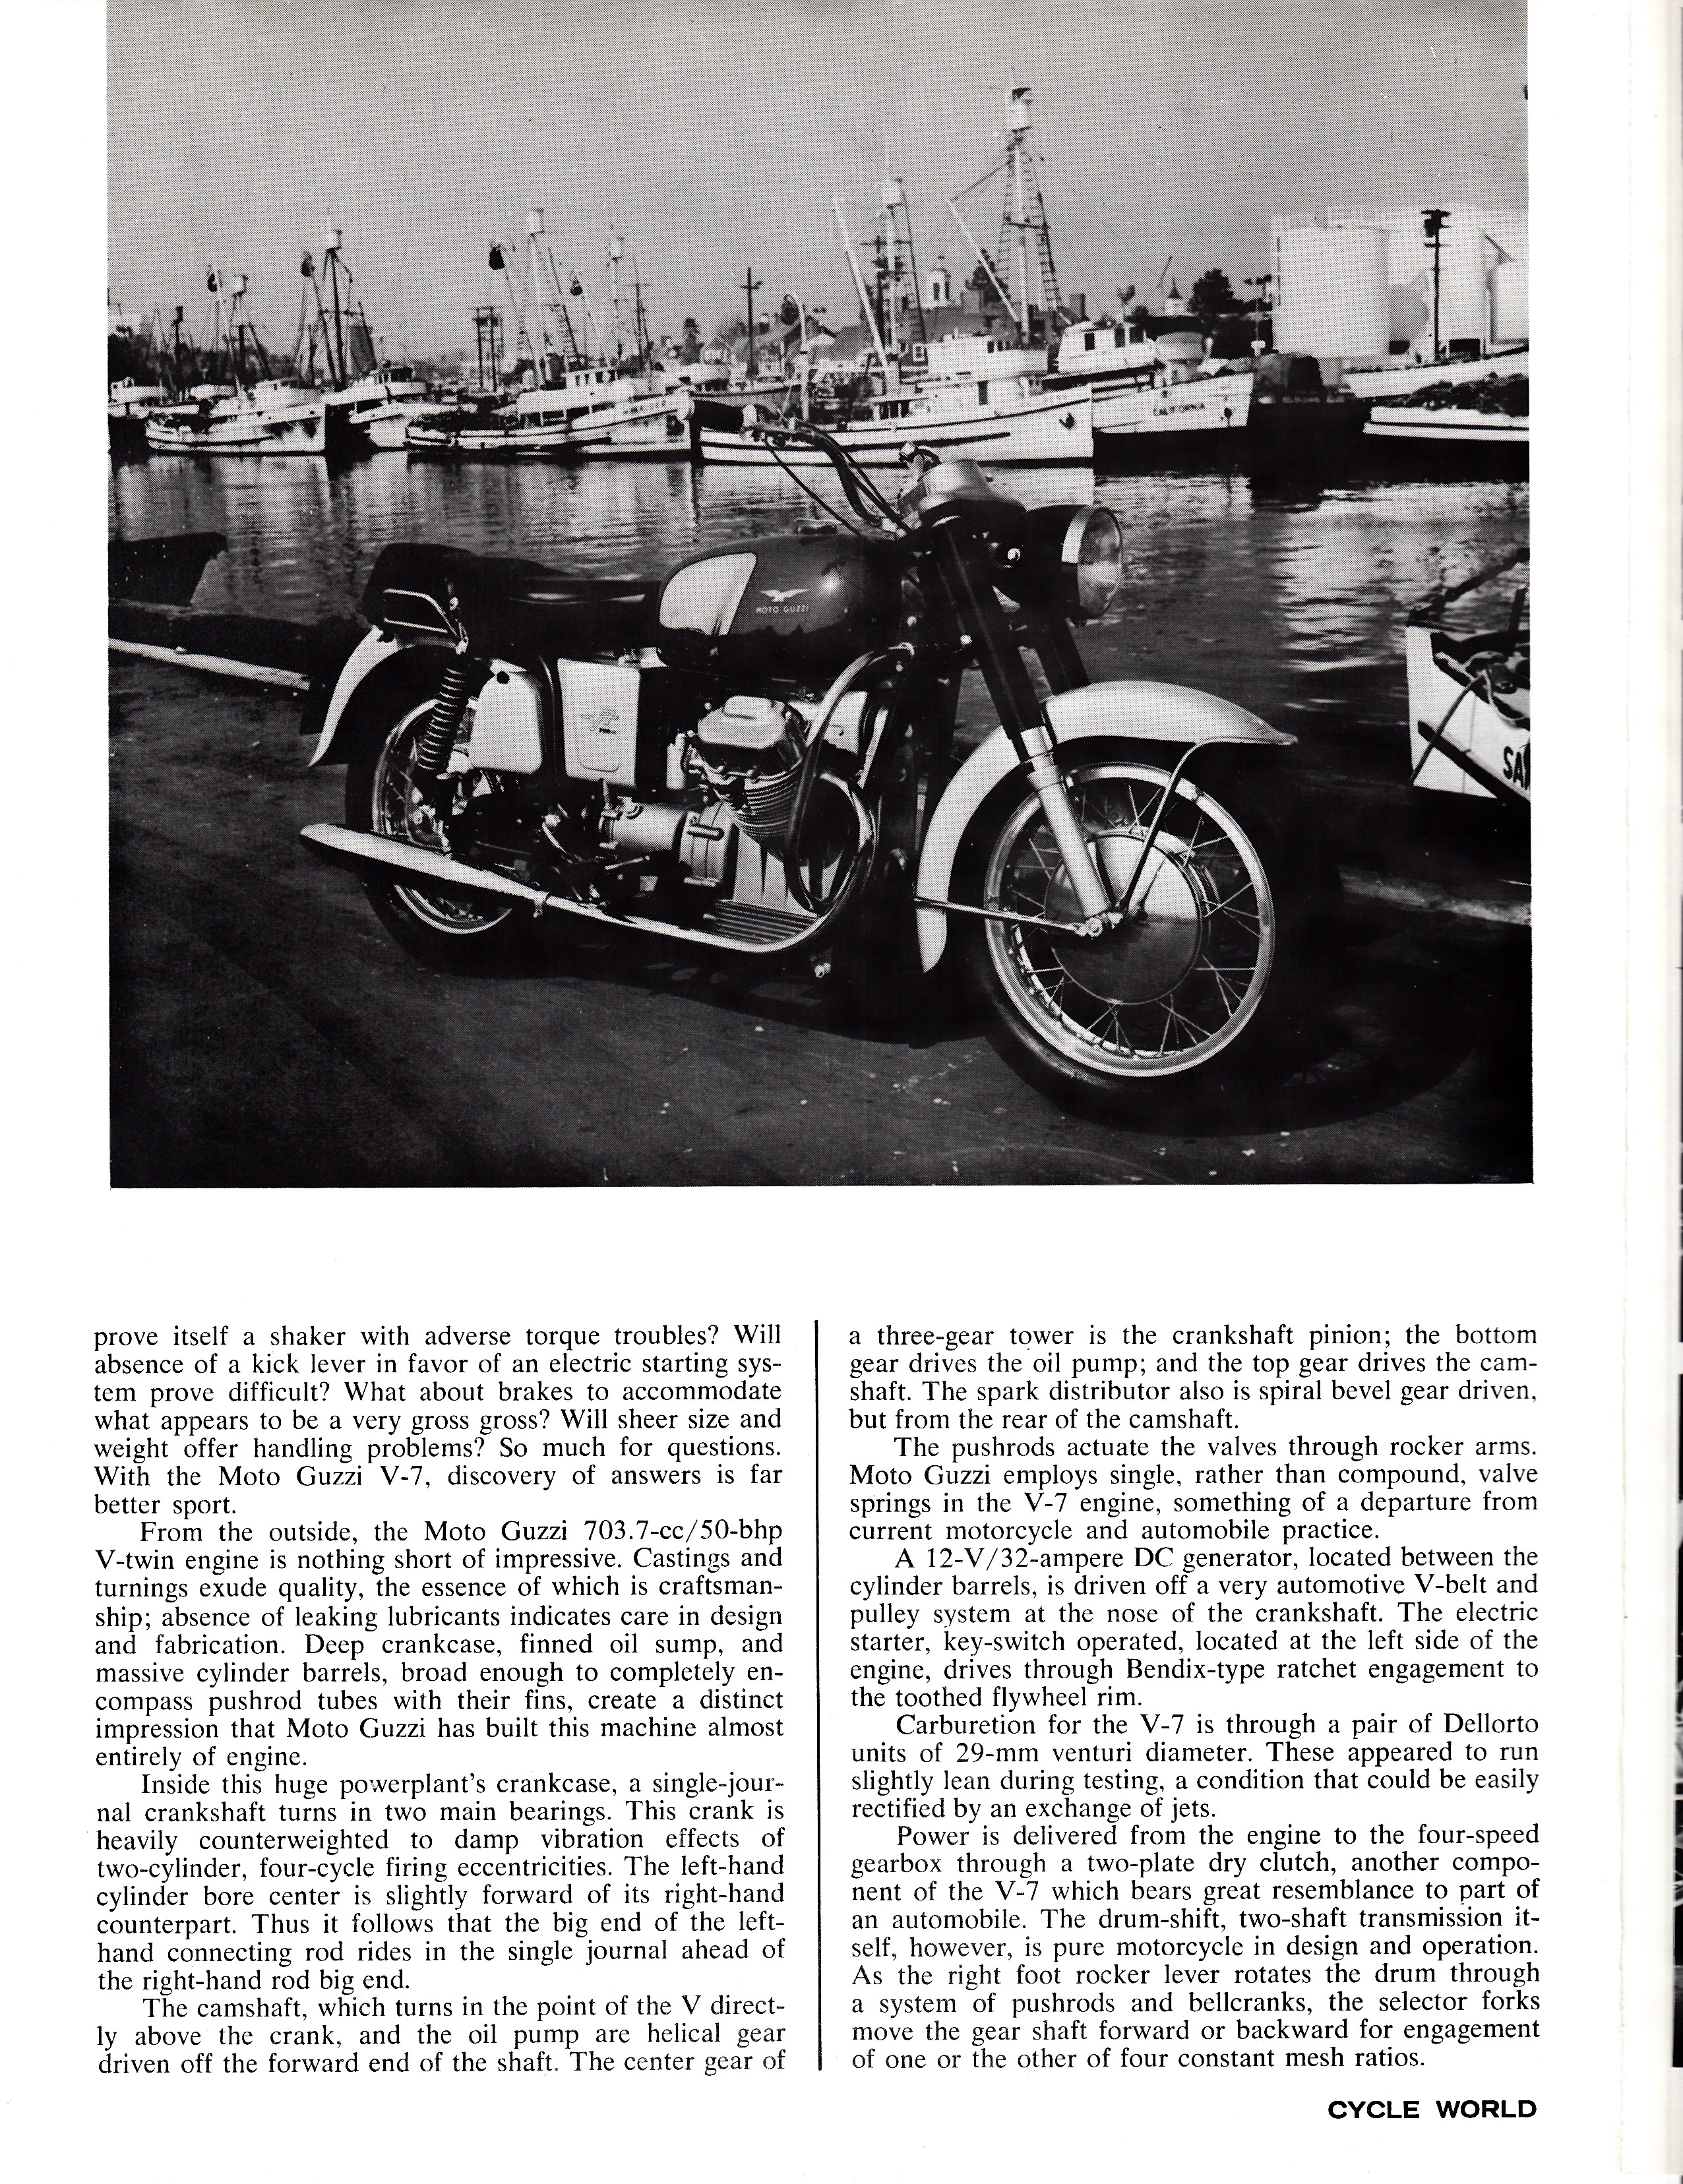 Moto Guzzi V700 factory brochure of magazine reviews, Page 2 of 8.